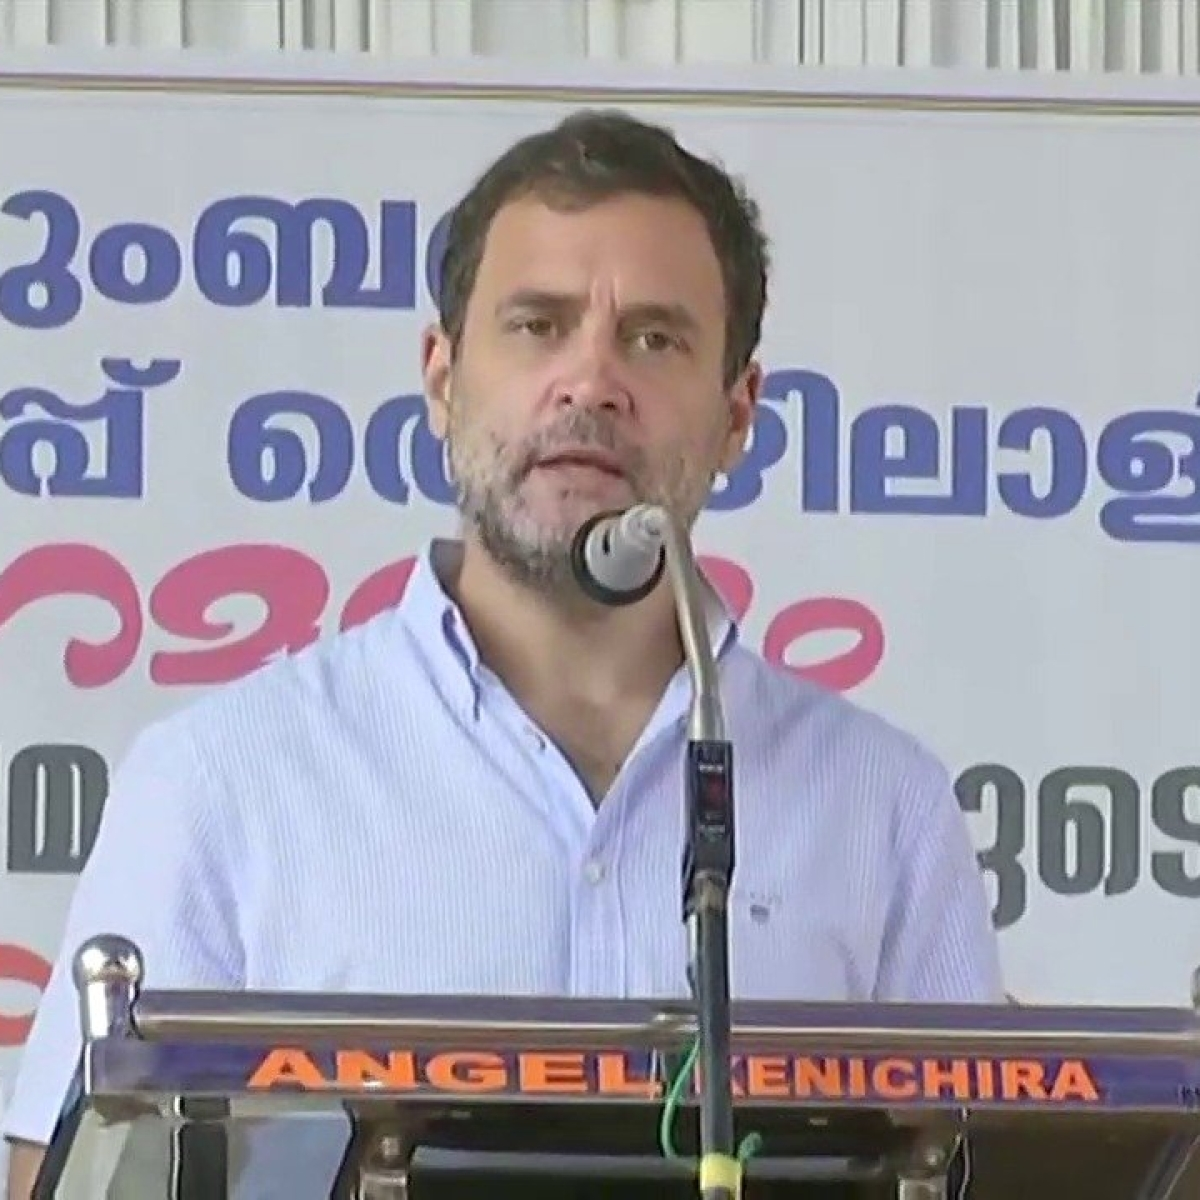 Rahul Gandhi slams PM Modi for ridiculing MGNREGA, says govt was forced to increase allocation during COVID-19 crisis